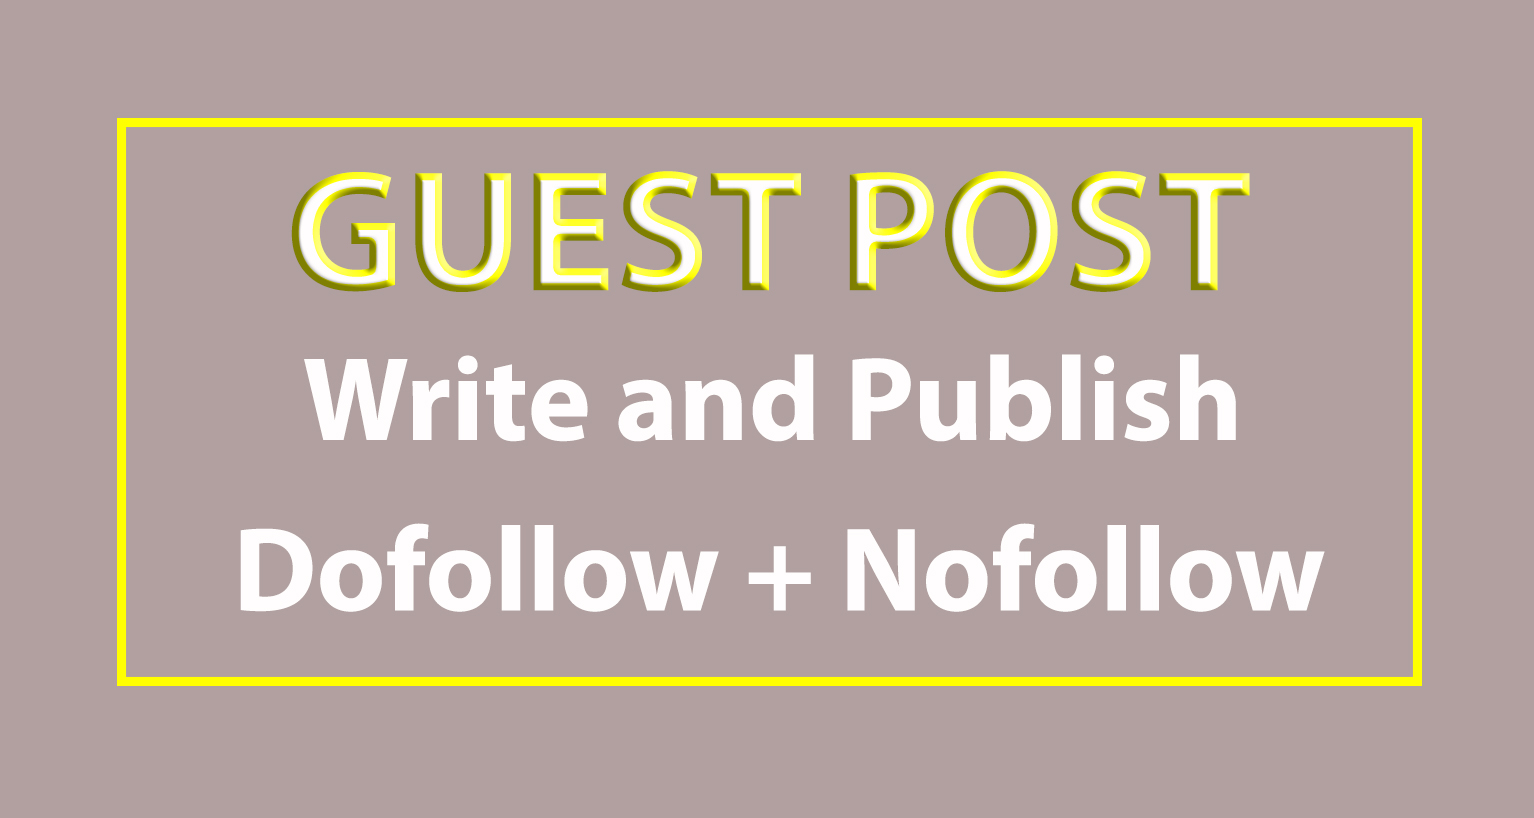 I will write and publish 40 guest post with Hight DA PA